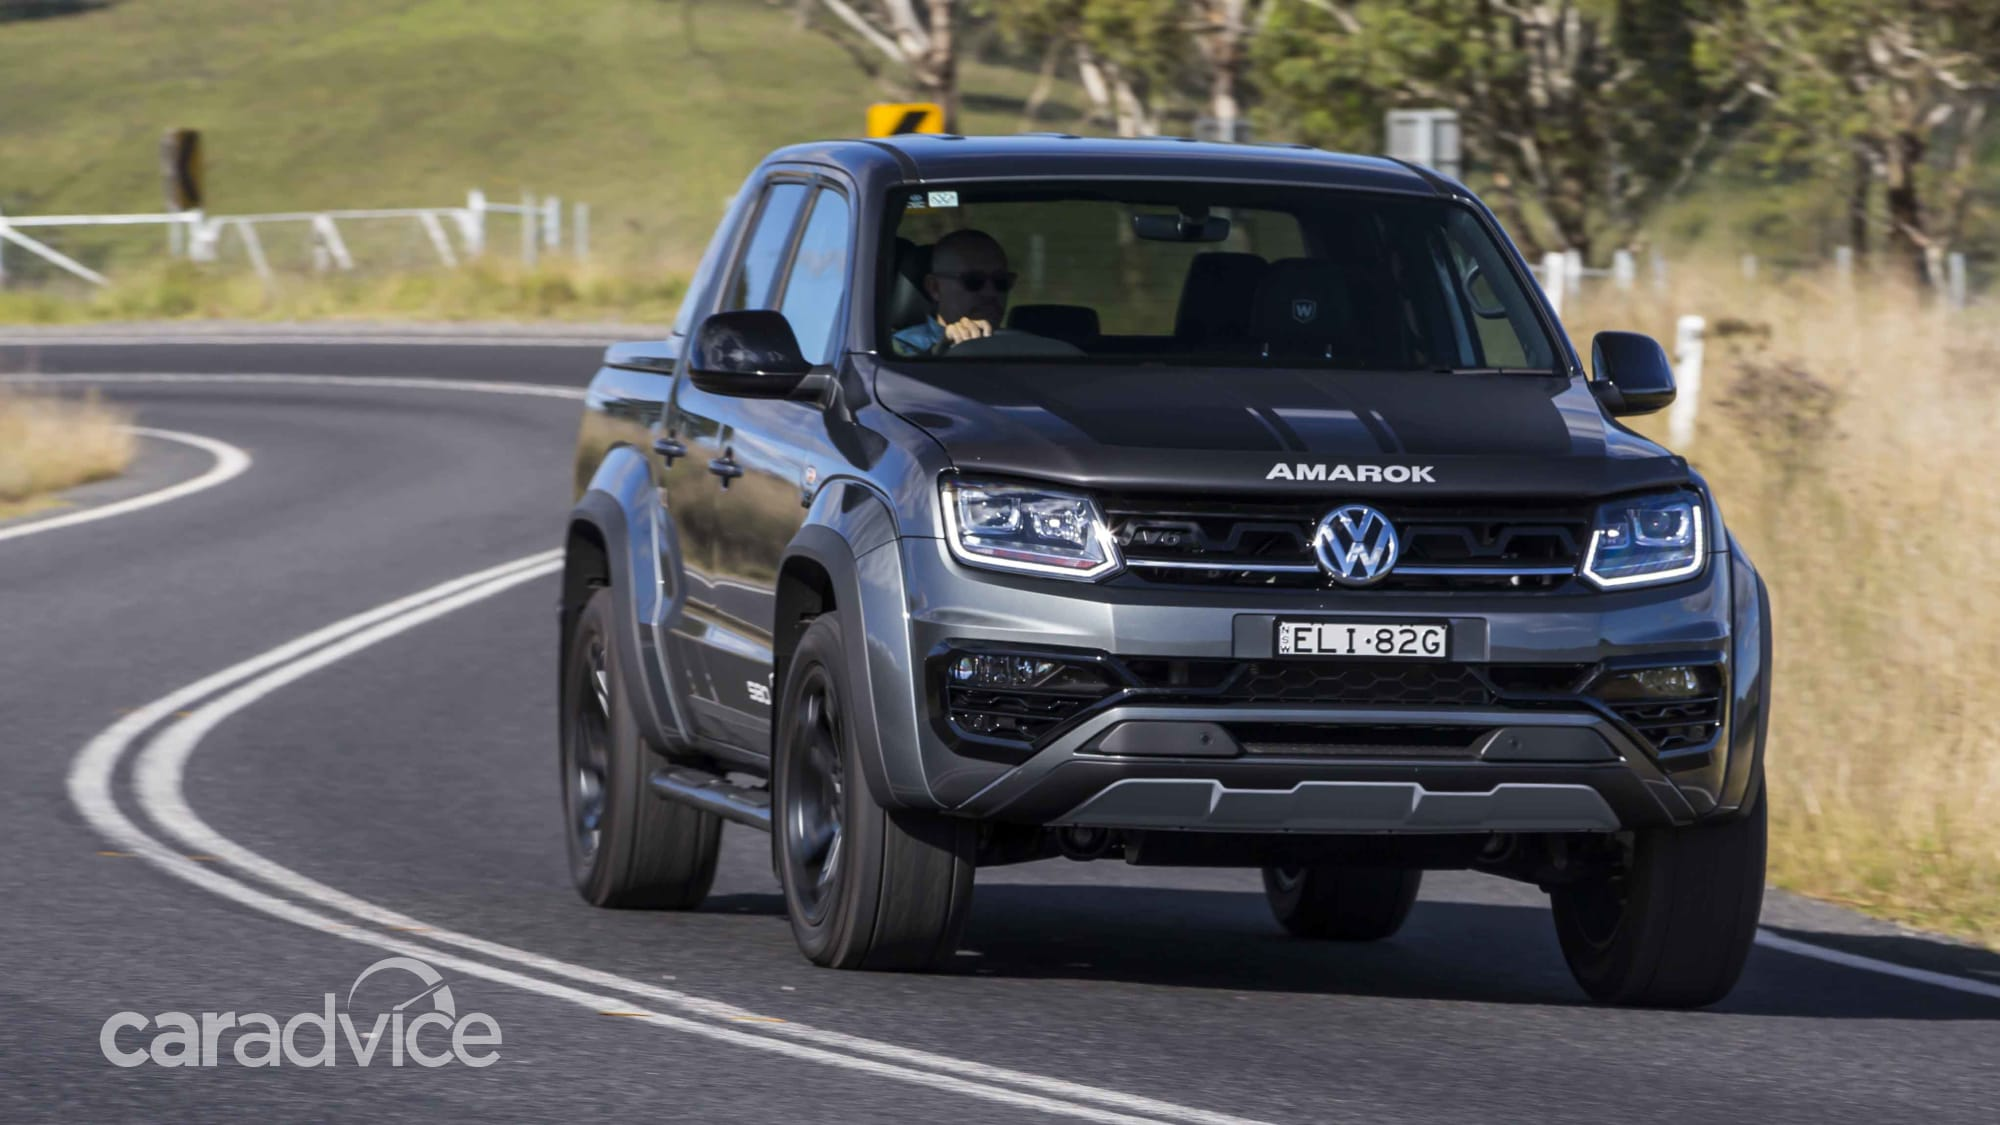 2021 VW Amarok W580 review: First local test drive | CarAdvice